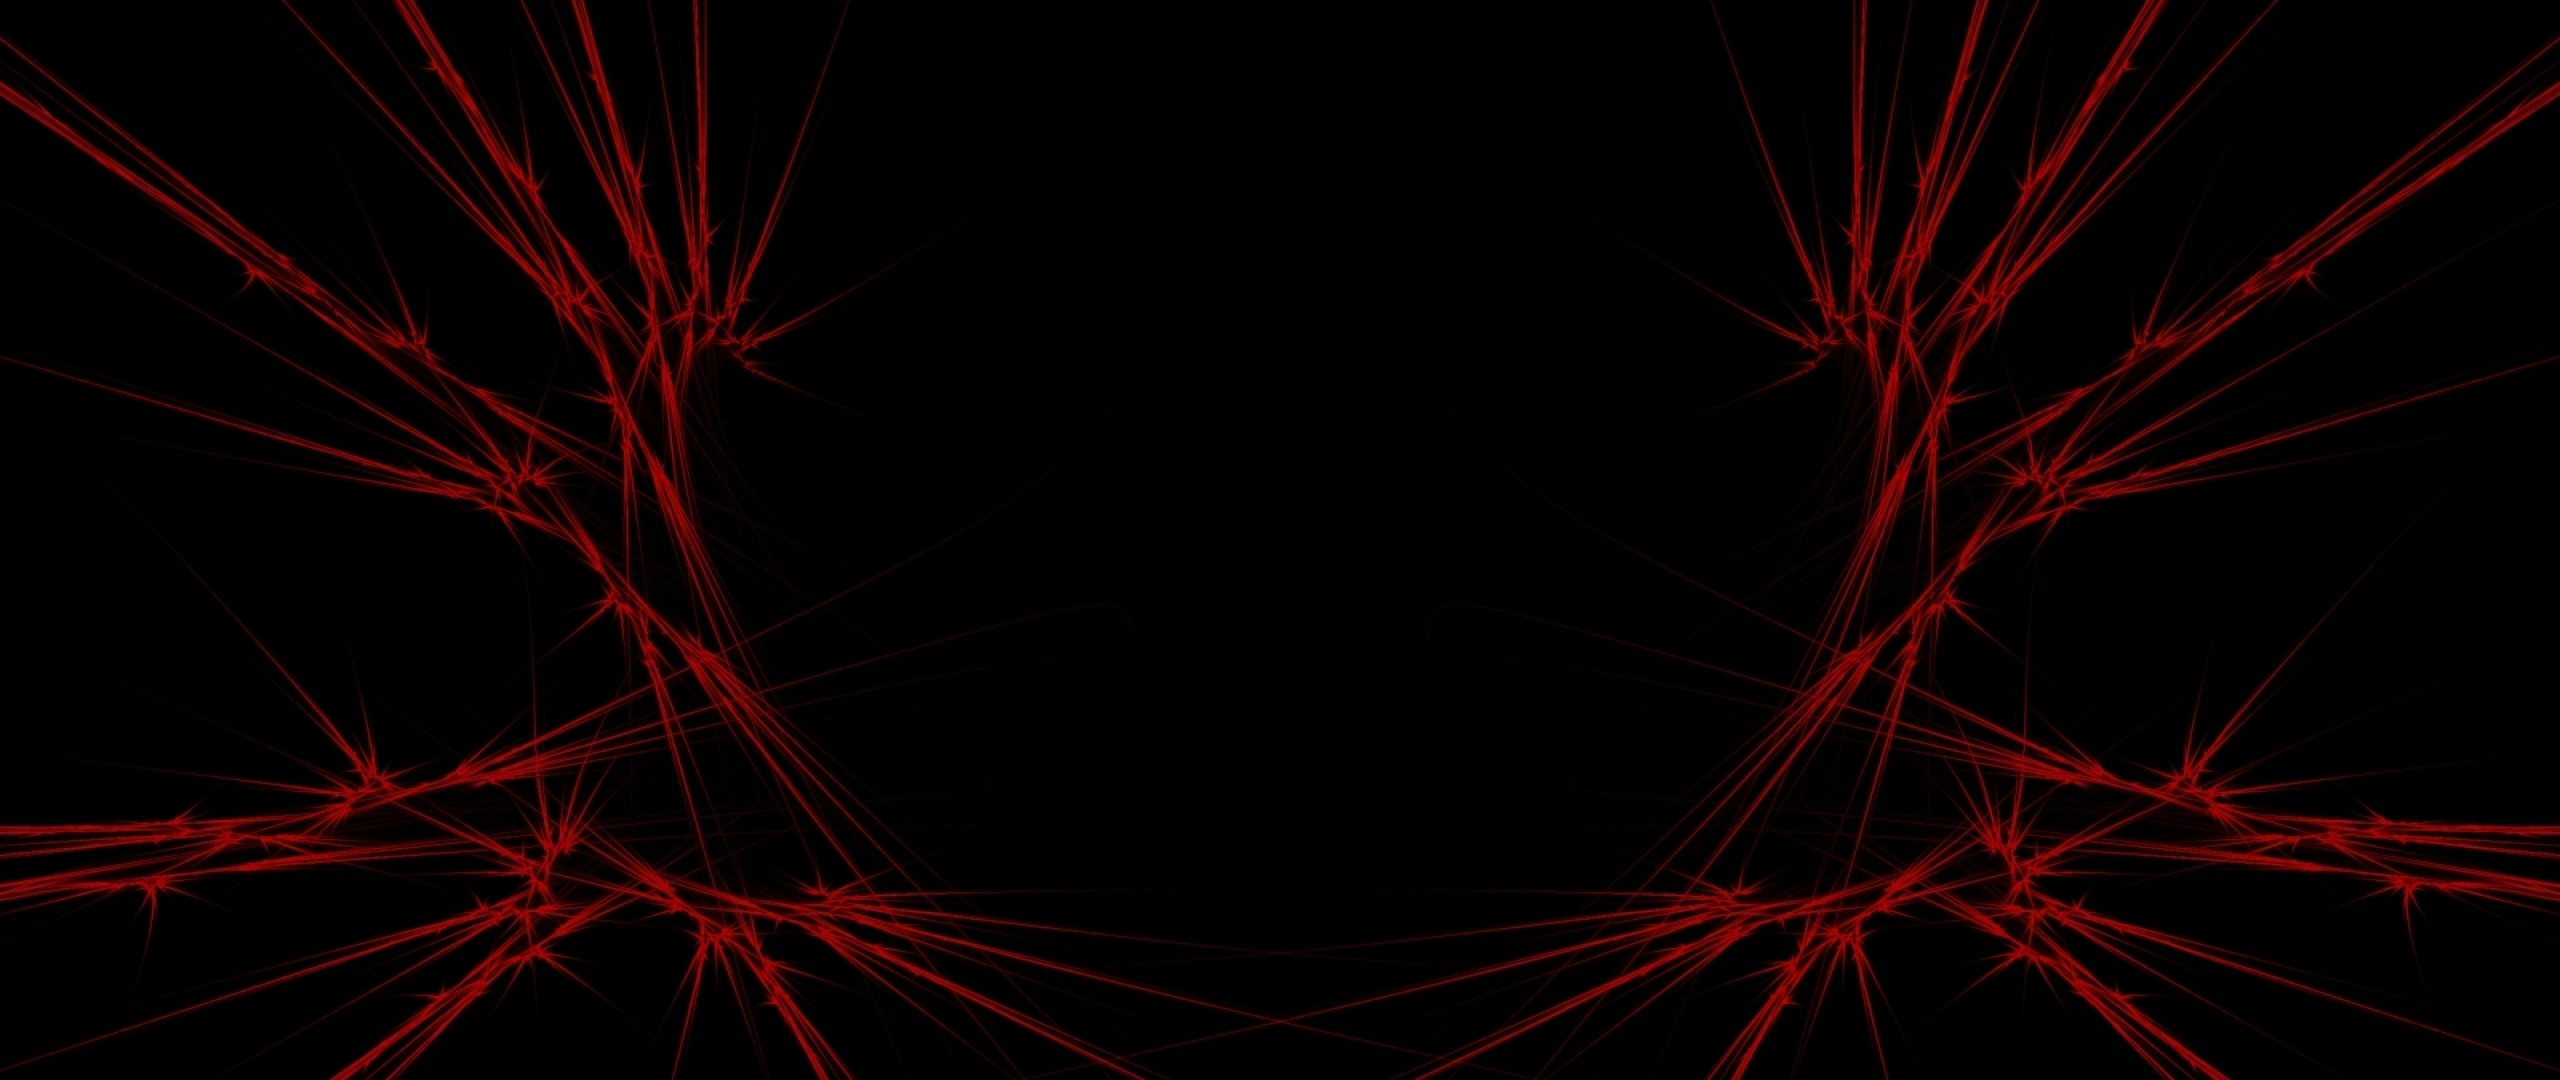 Preview wallpaper red, black, abstract 2560×1080